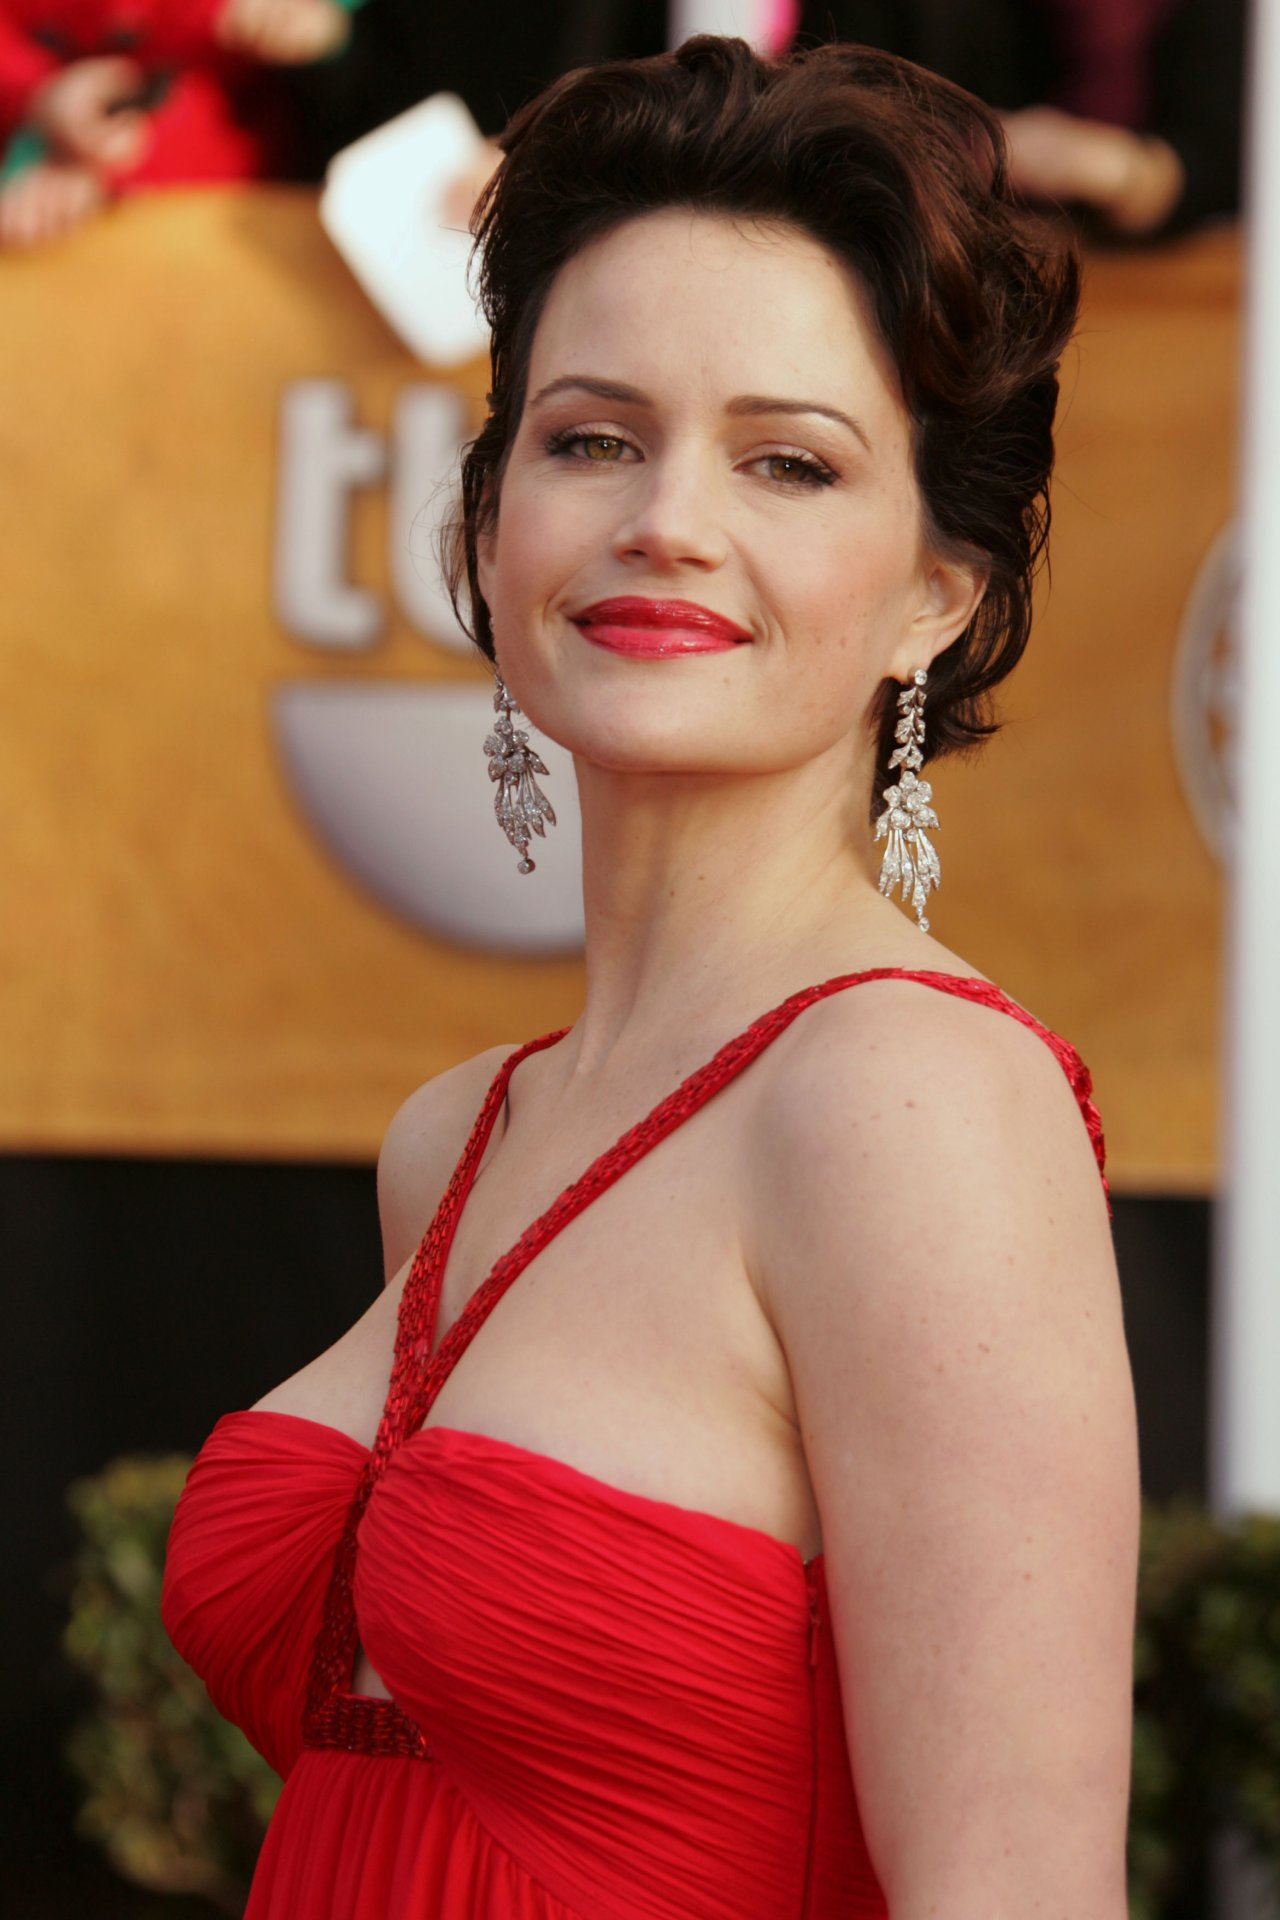 Carla Gugino Hot Pics, Sexy Near-Nude Photos, Videos